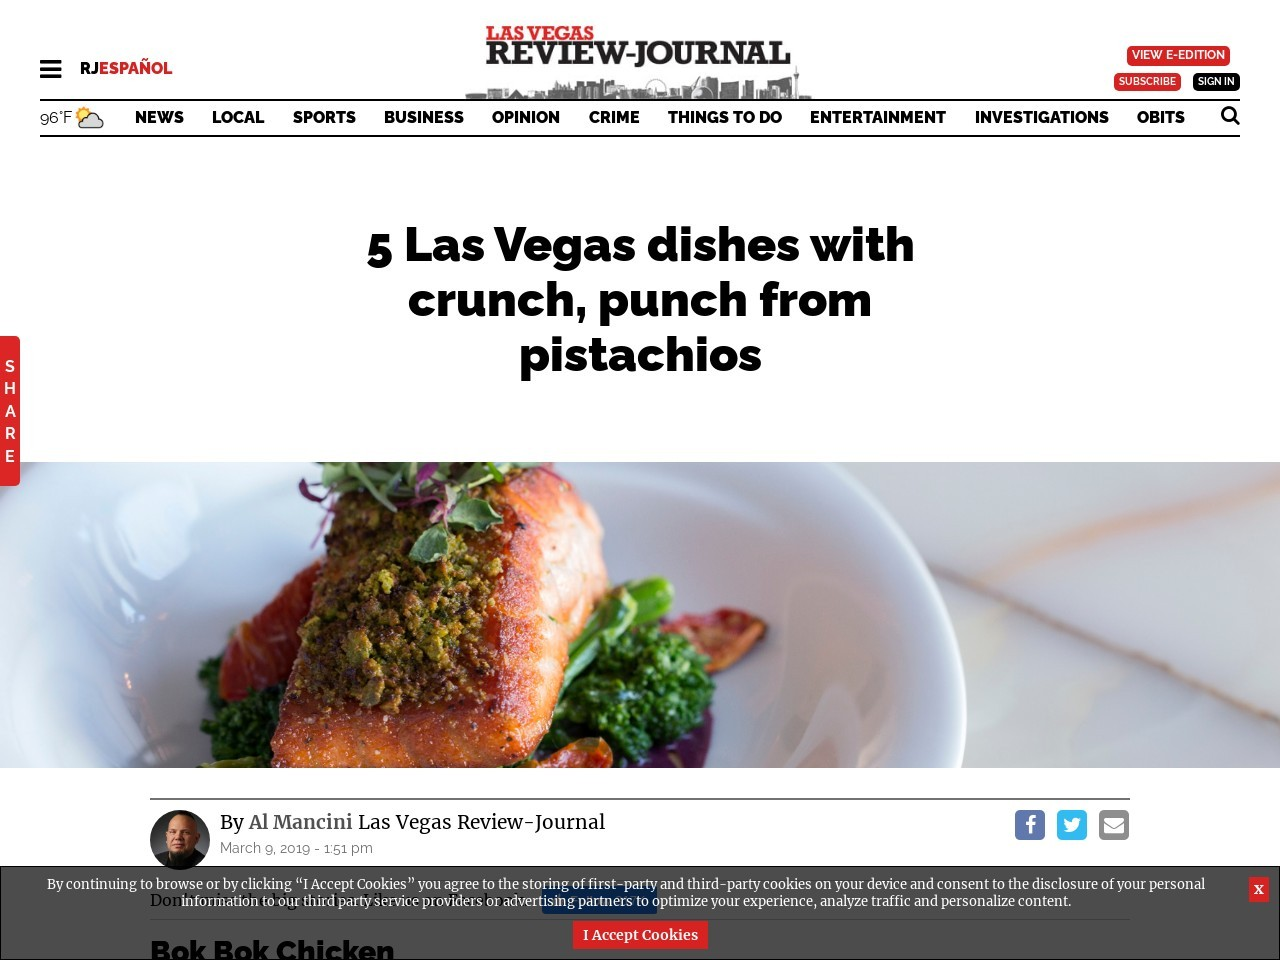 5 Las Vegas dishes with crunch, punch from pistachios